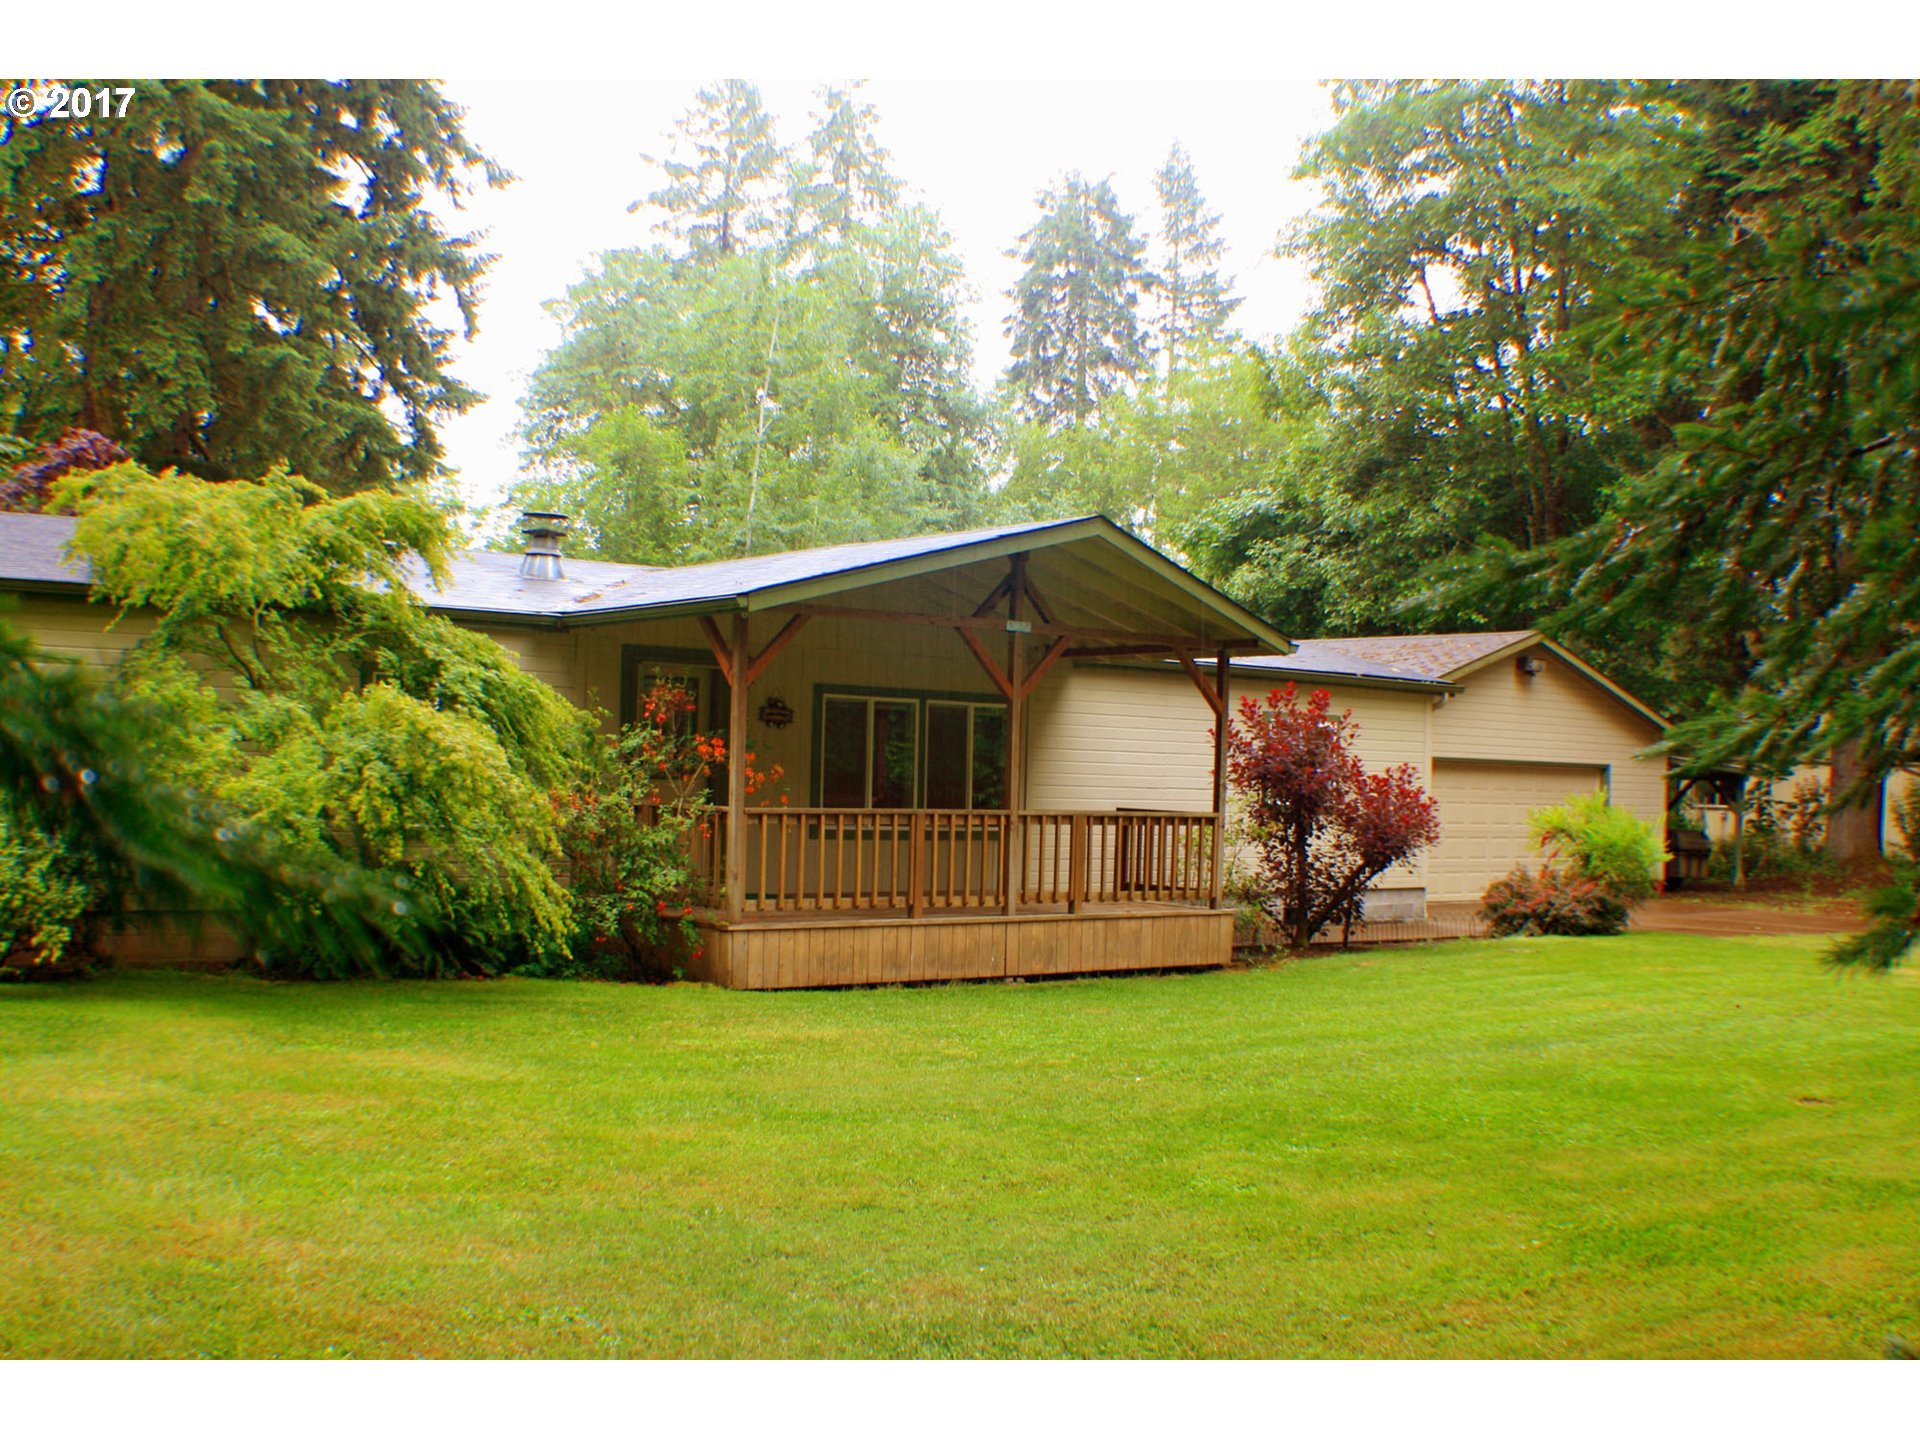 92961 MARCOLA RD, Marcola, OR 97454